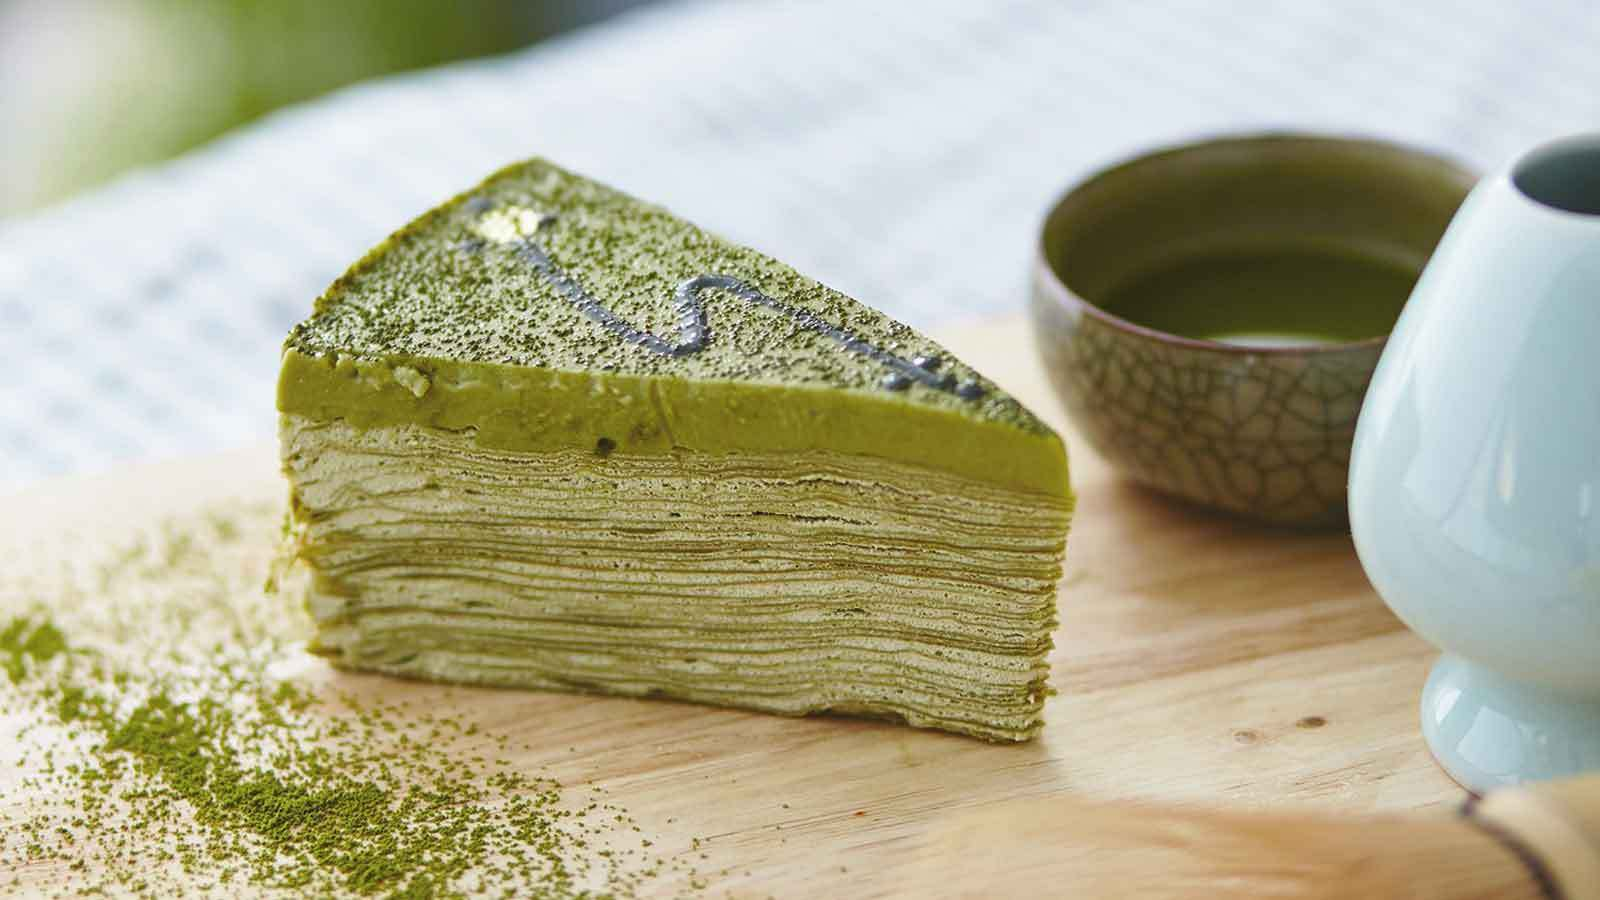 matcha green tea baked into a cake